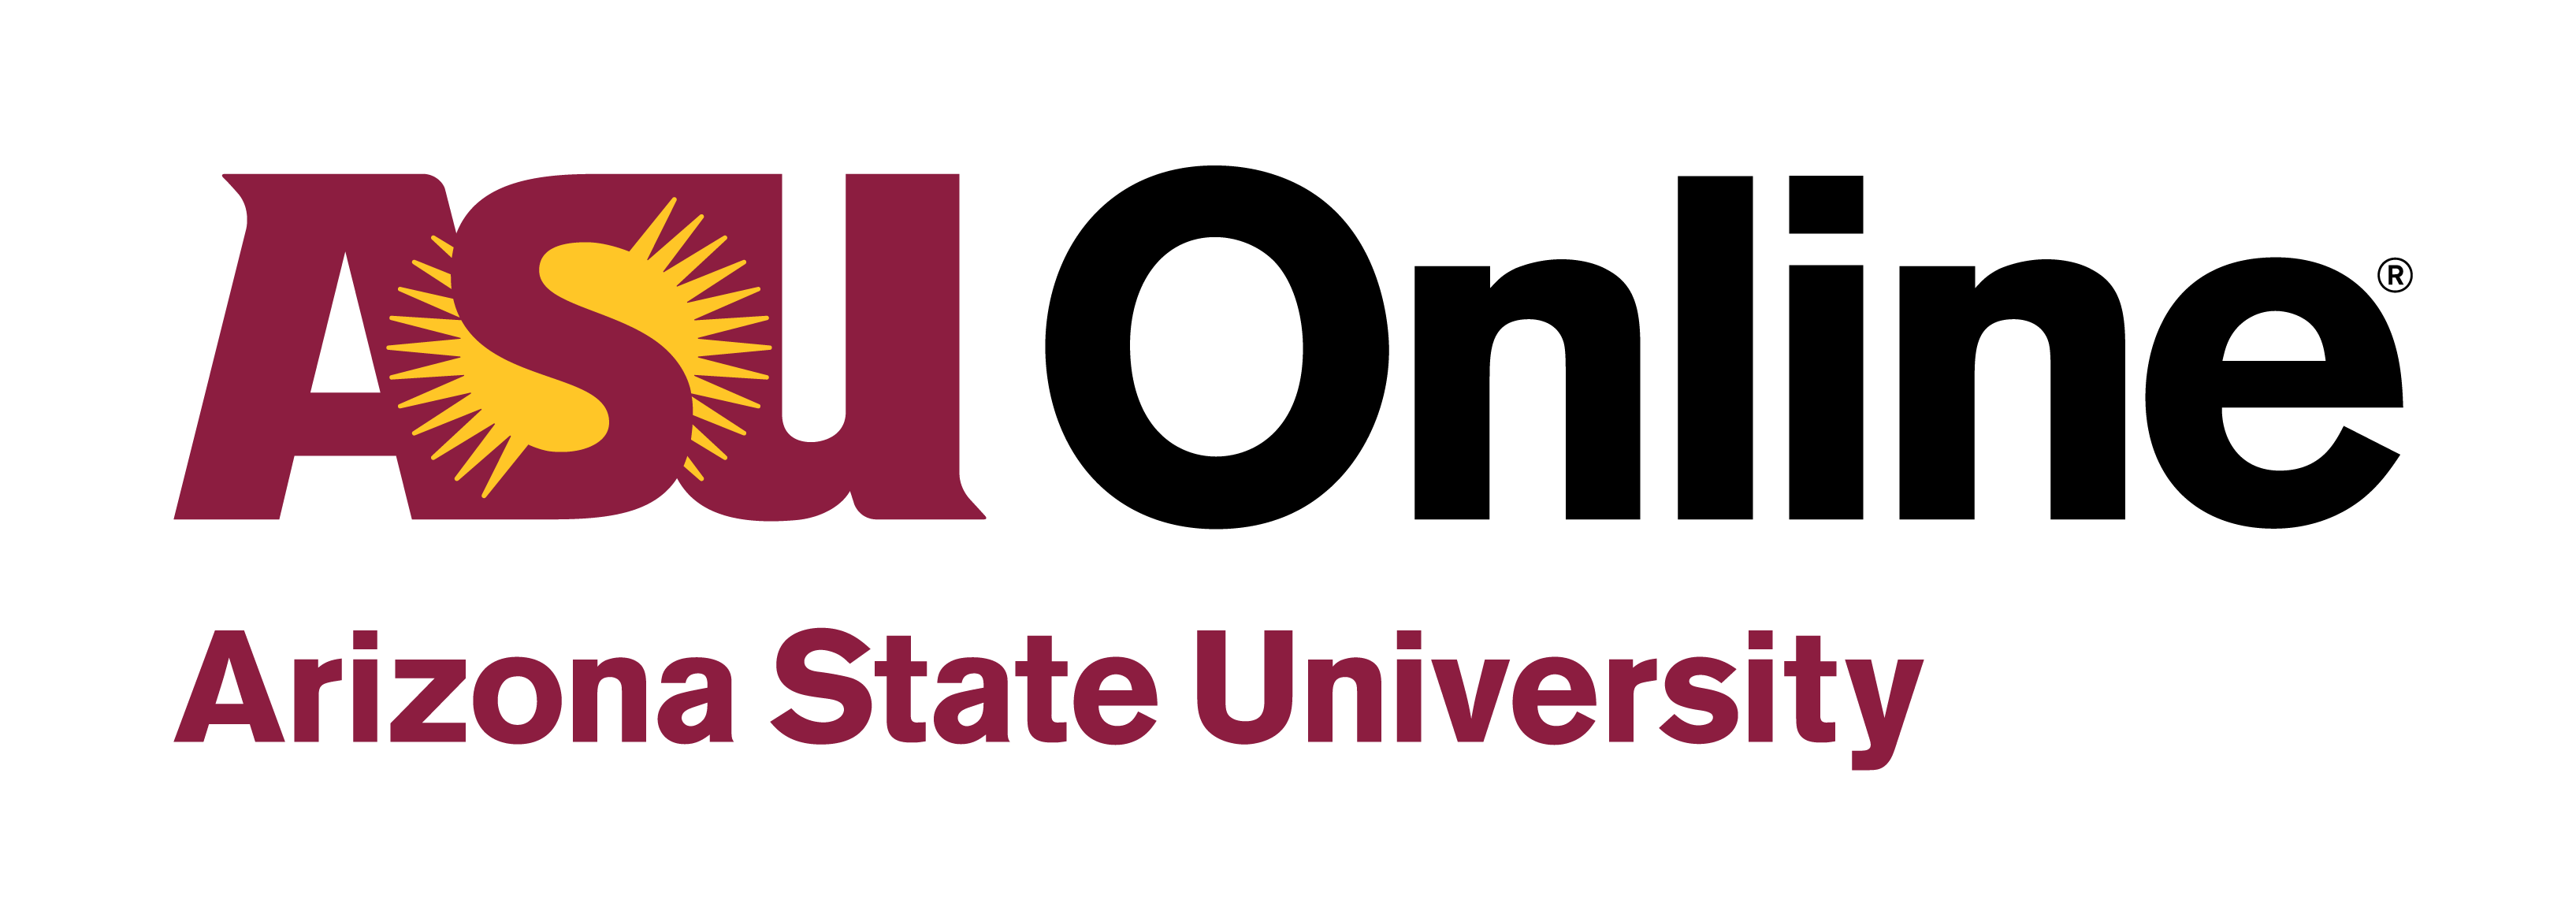 ASU Logo - ASU Online logo 2018 | EdPlus at Arizona State University